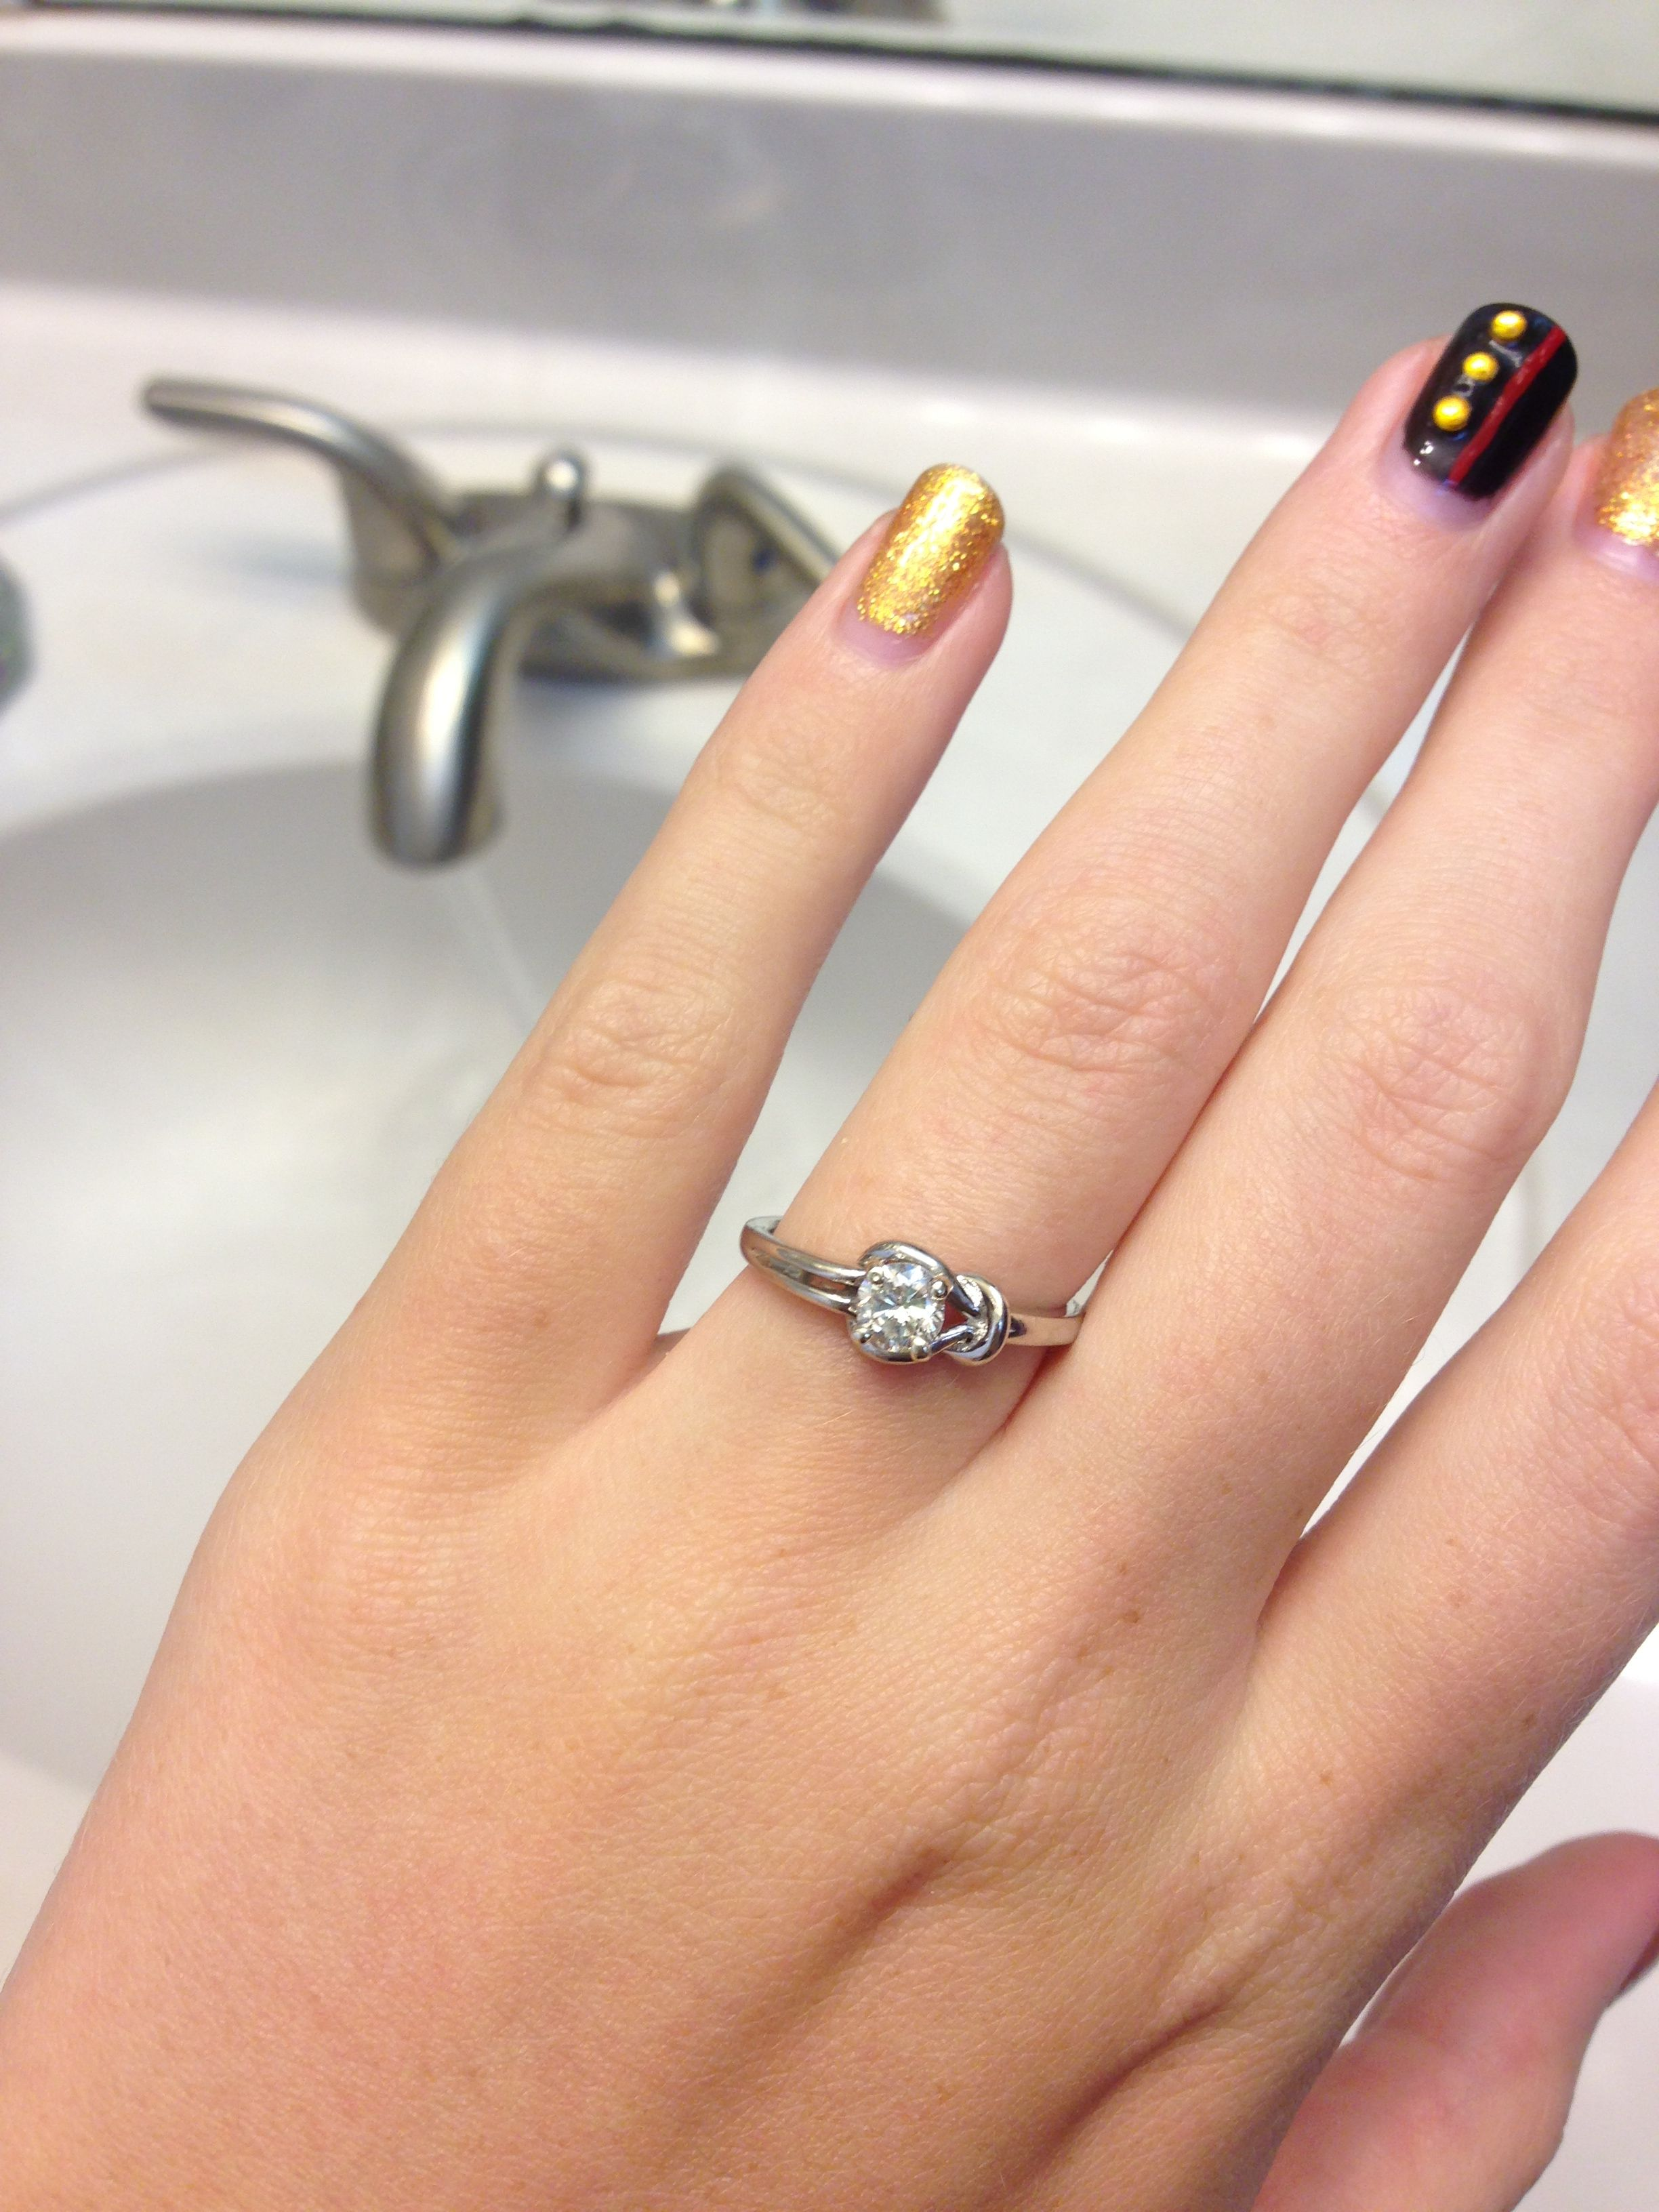 My love knot engagement ring Knot ring meaning, Rings